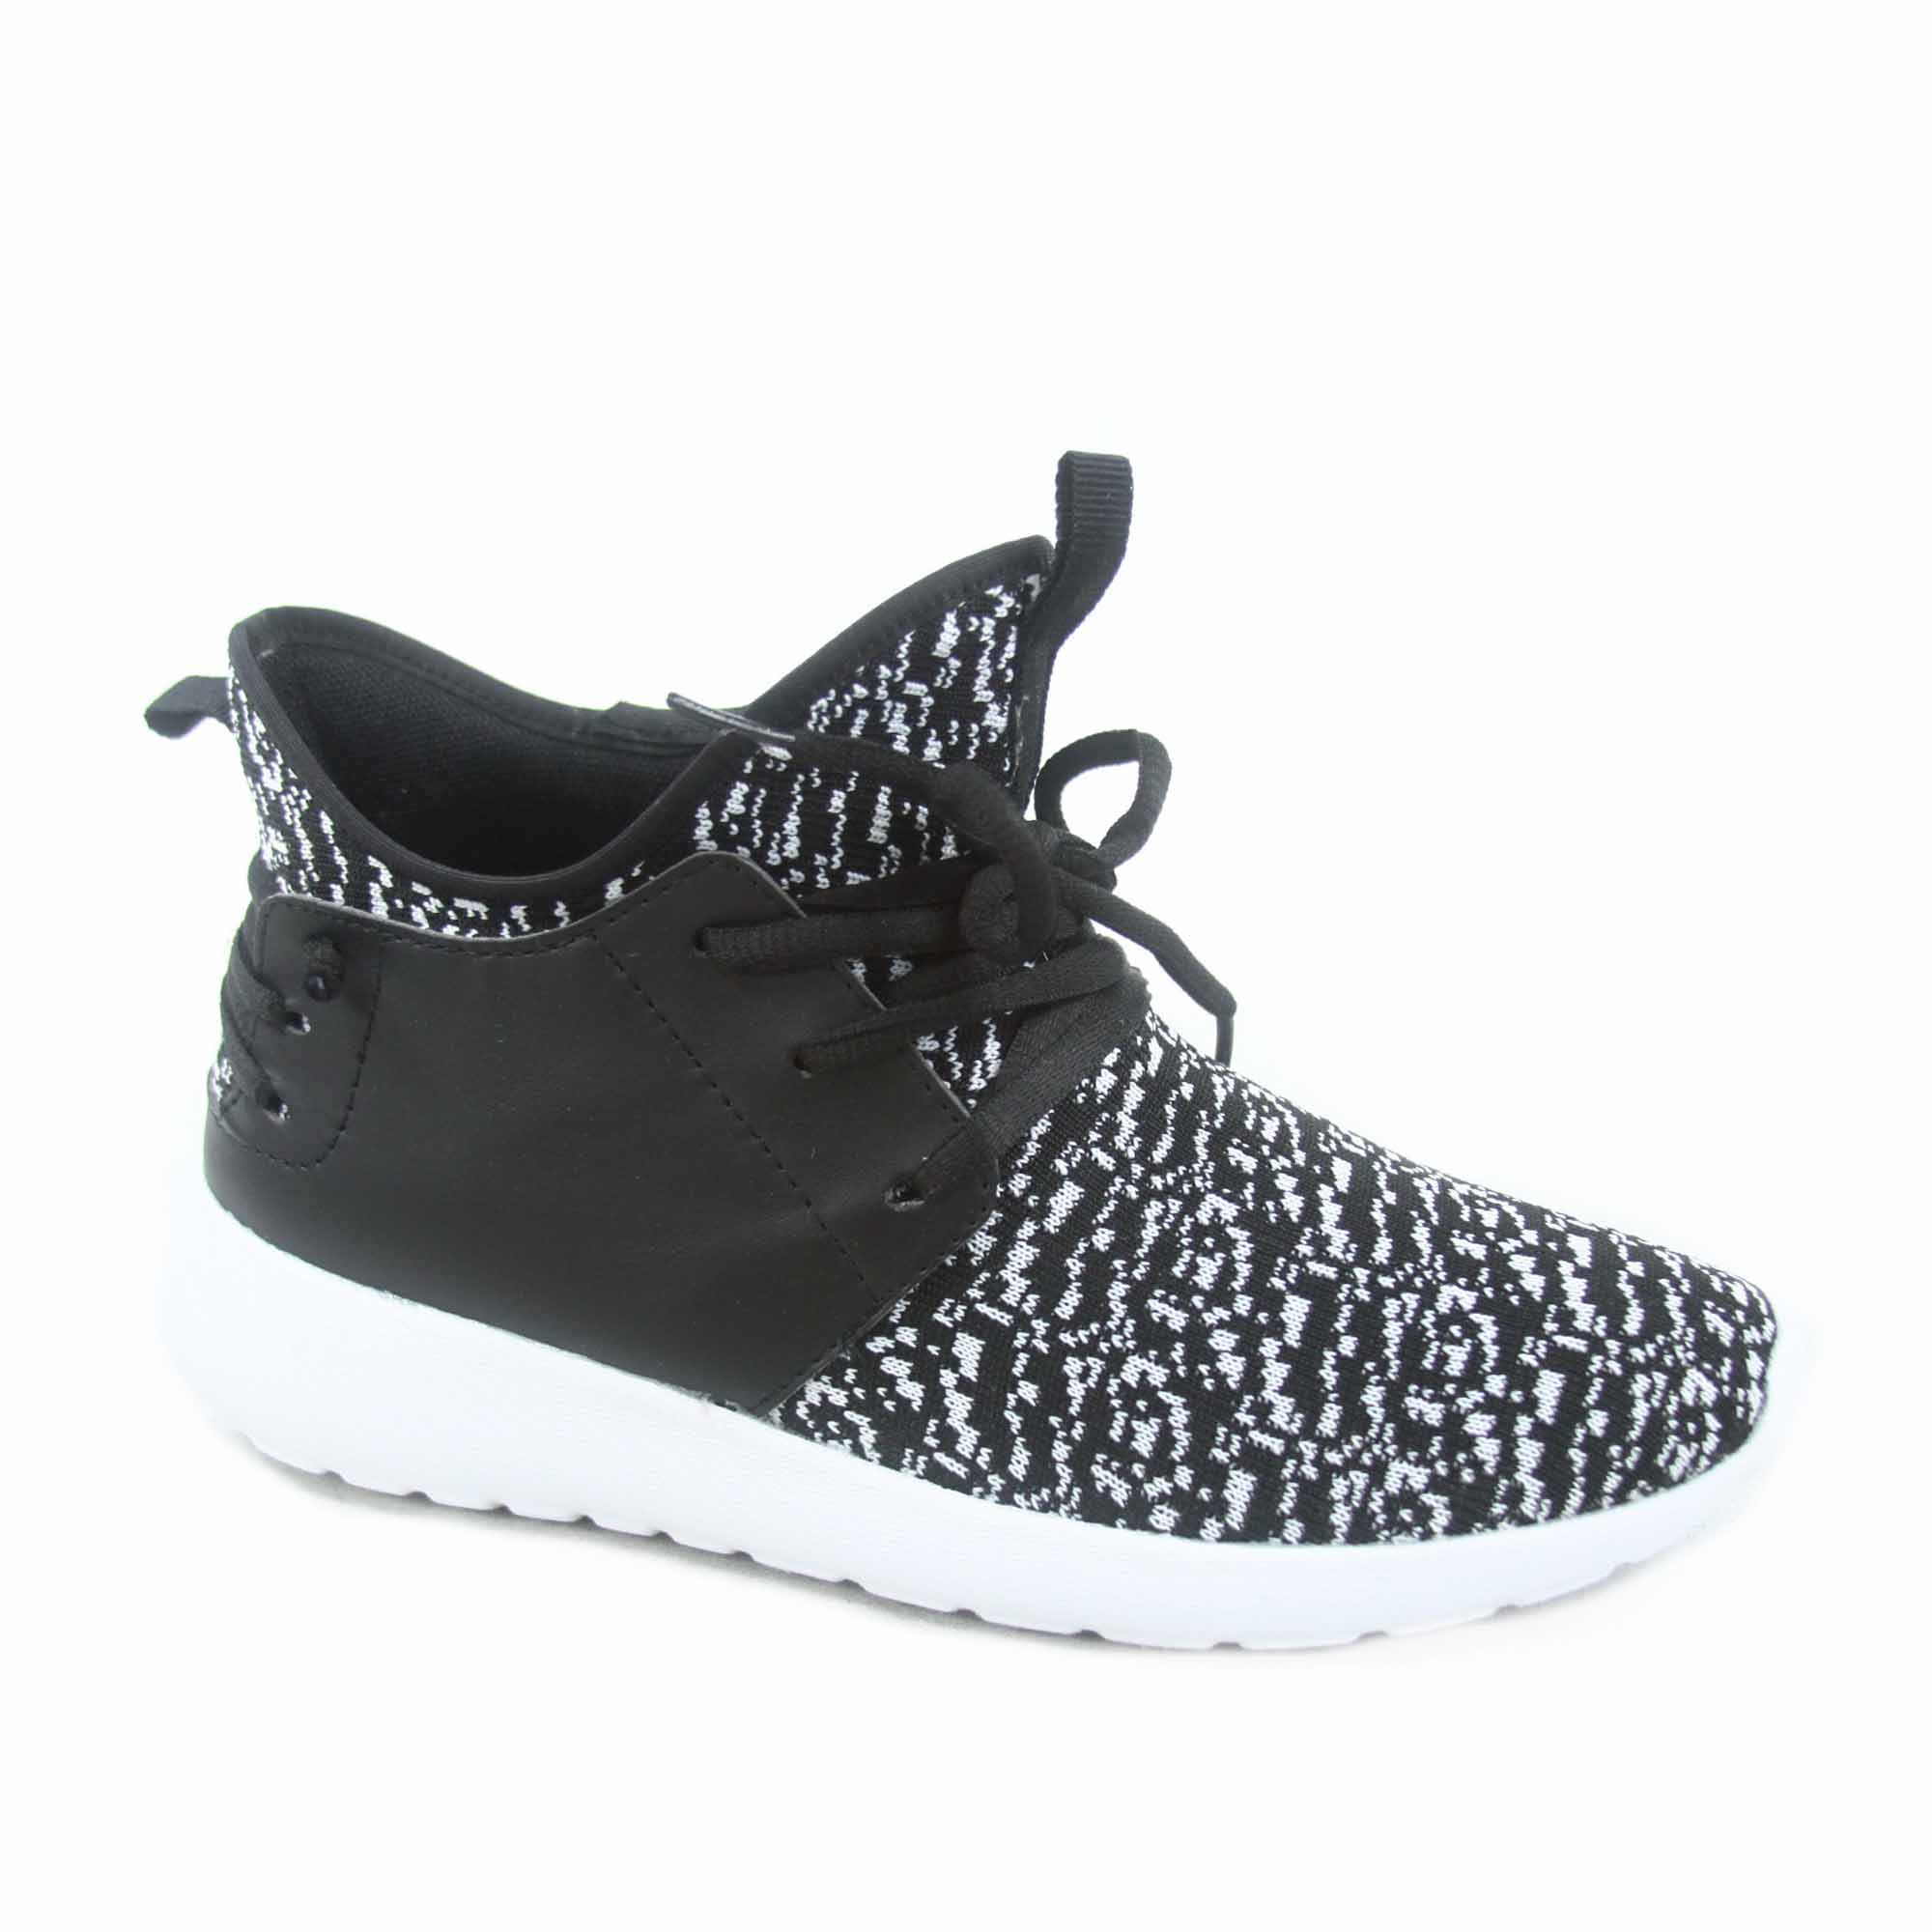 Relax J1 Women's  Lace UP Light Weight Athletic  Sneakers Running Shoes